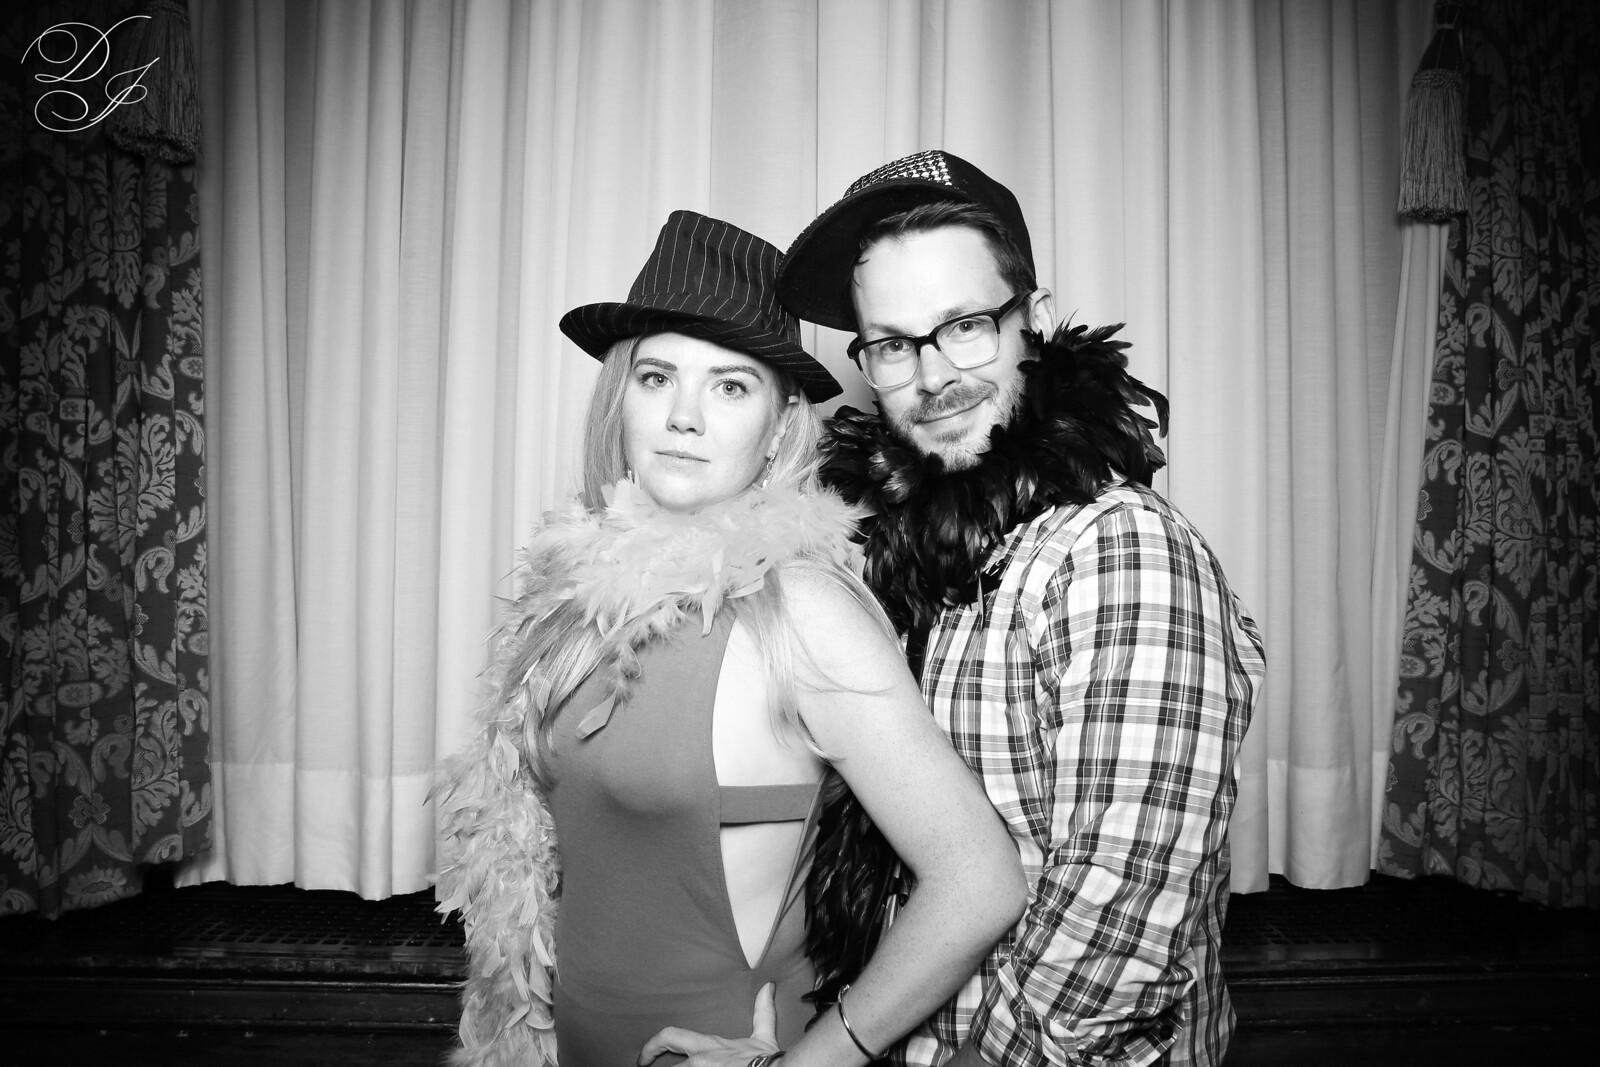 Chicago_Vintage_Wedding_Photobooth_Union_League_Club_27.jpg